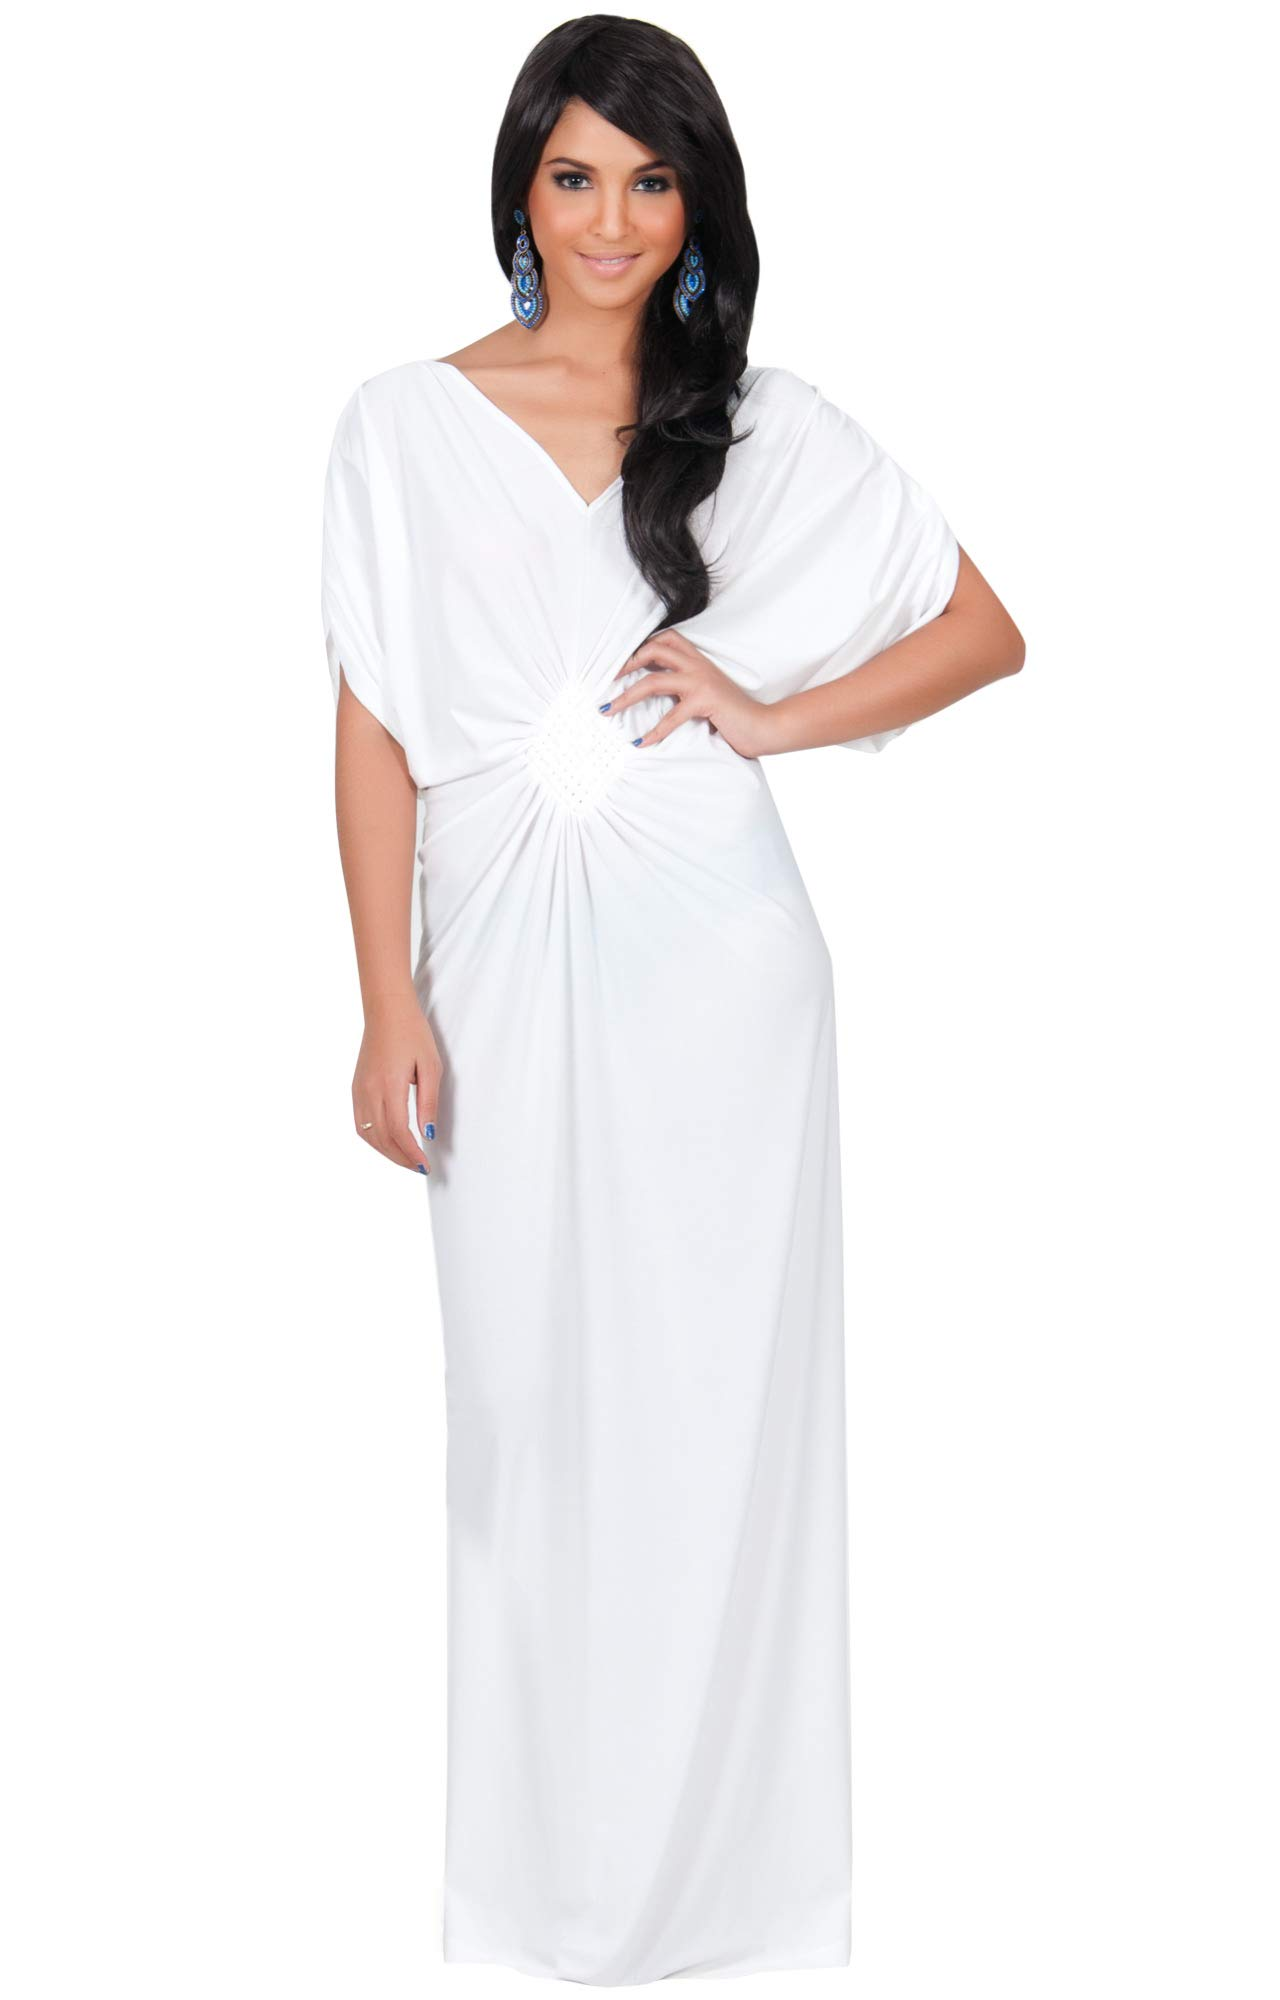 76e58c0fc04 KOH KOH Womens Long Short Sleeve Grecian Goddess Evening Modest Bridesmaid  Formal Sexy Wedding Party Guest Flowy Cute Maternity Gown Gowns Maxi Dress  ...